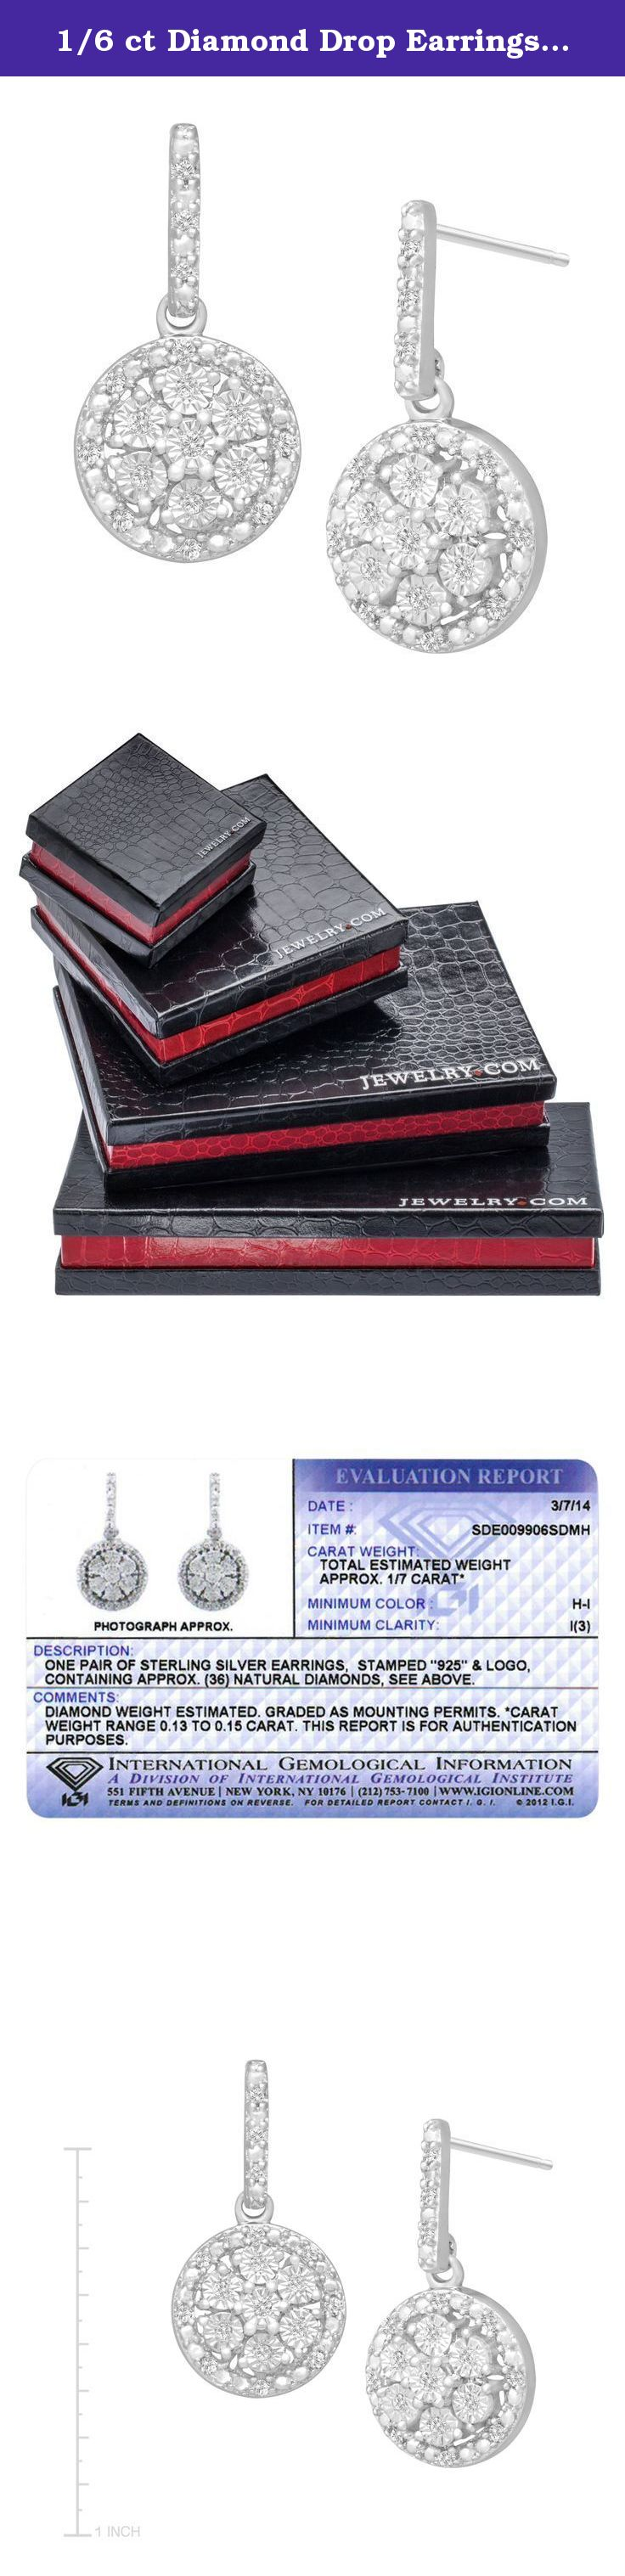 1/6 ct Diamond Drop Earrings in Sterling Silver. Shimmer with these diamond earrings, destined to be your forever favorite. Medallions of round-cut diamonds totaling 1/6 ct are set in sterling silver. Pieces measure 3/4 by 3/8 inches.